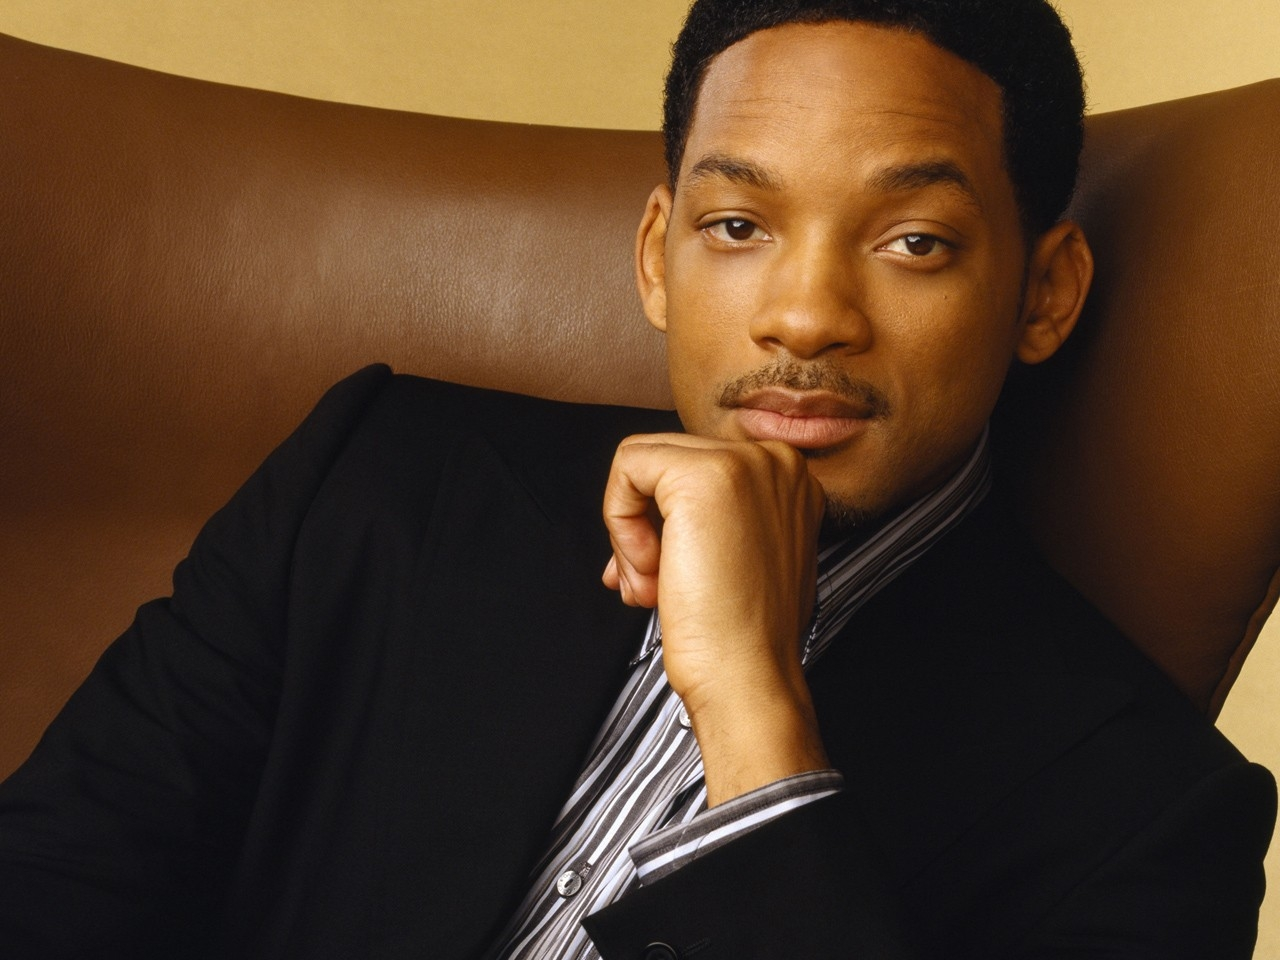 Overview of the roles and movies of actor Will Smith